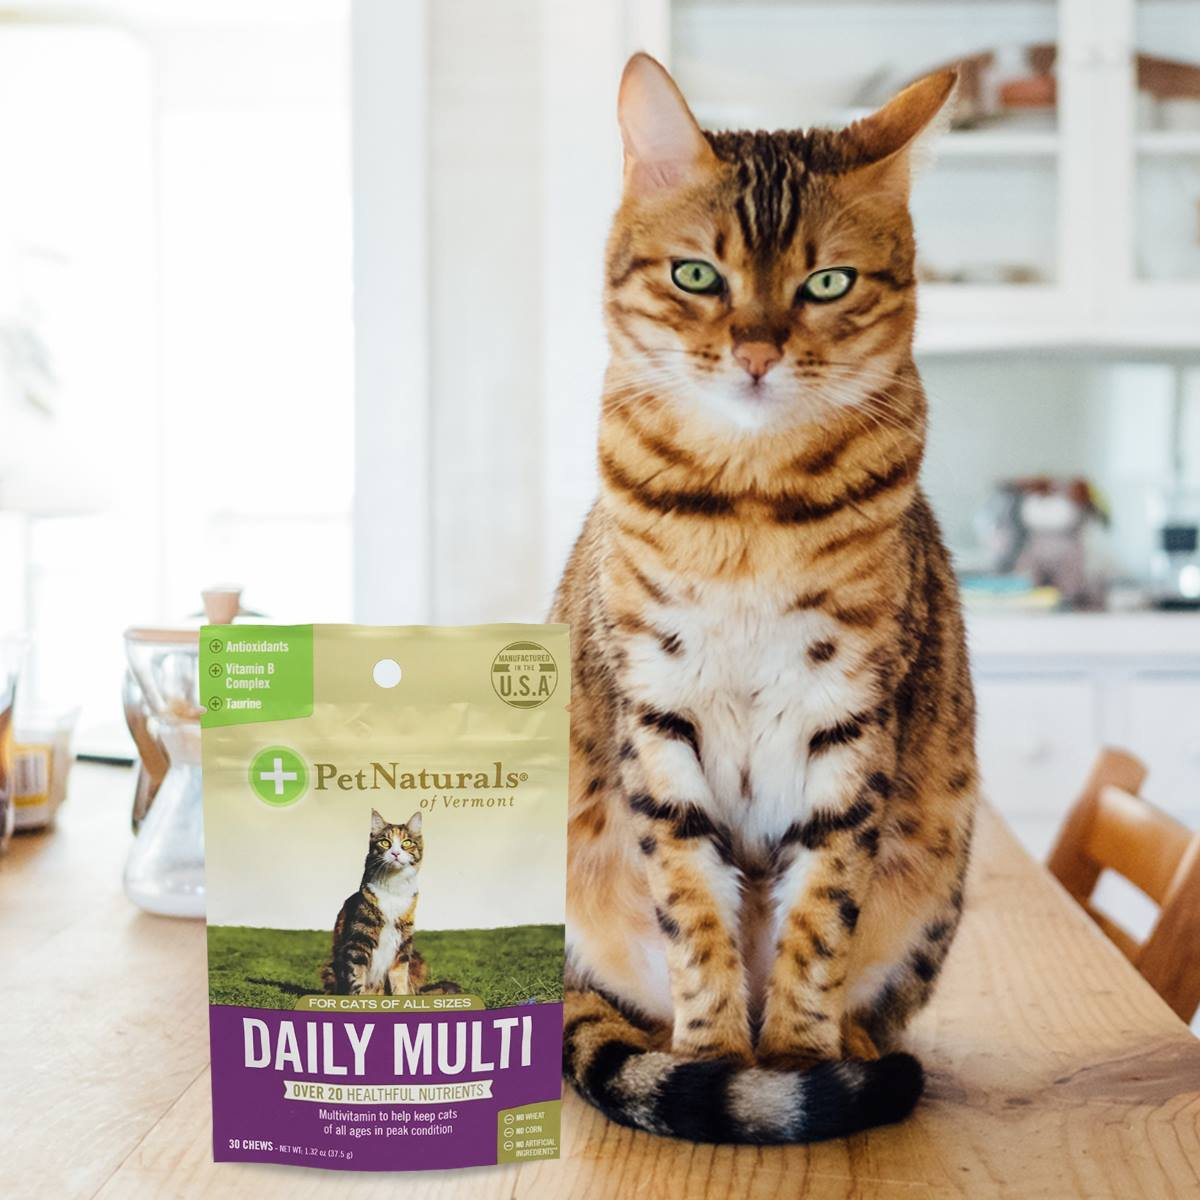 Pet Naturals Cat With Product